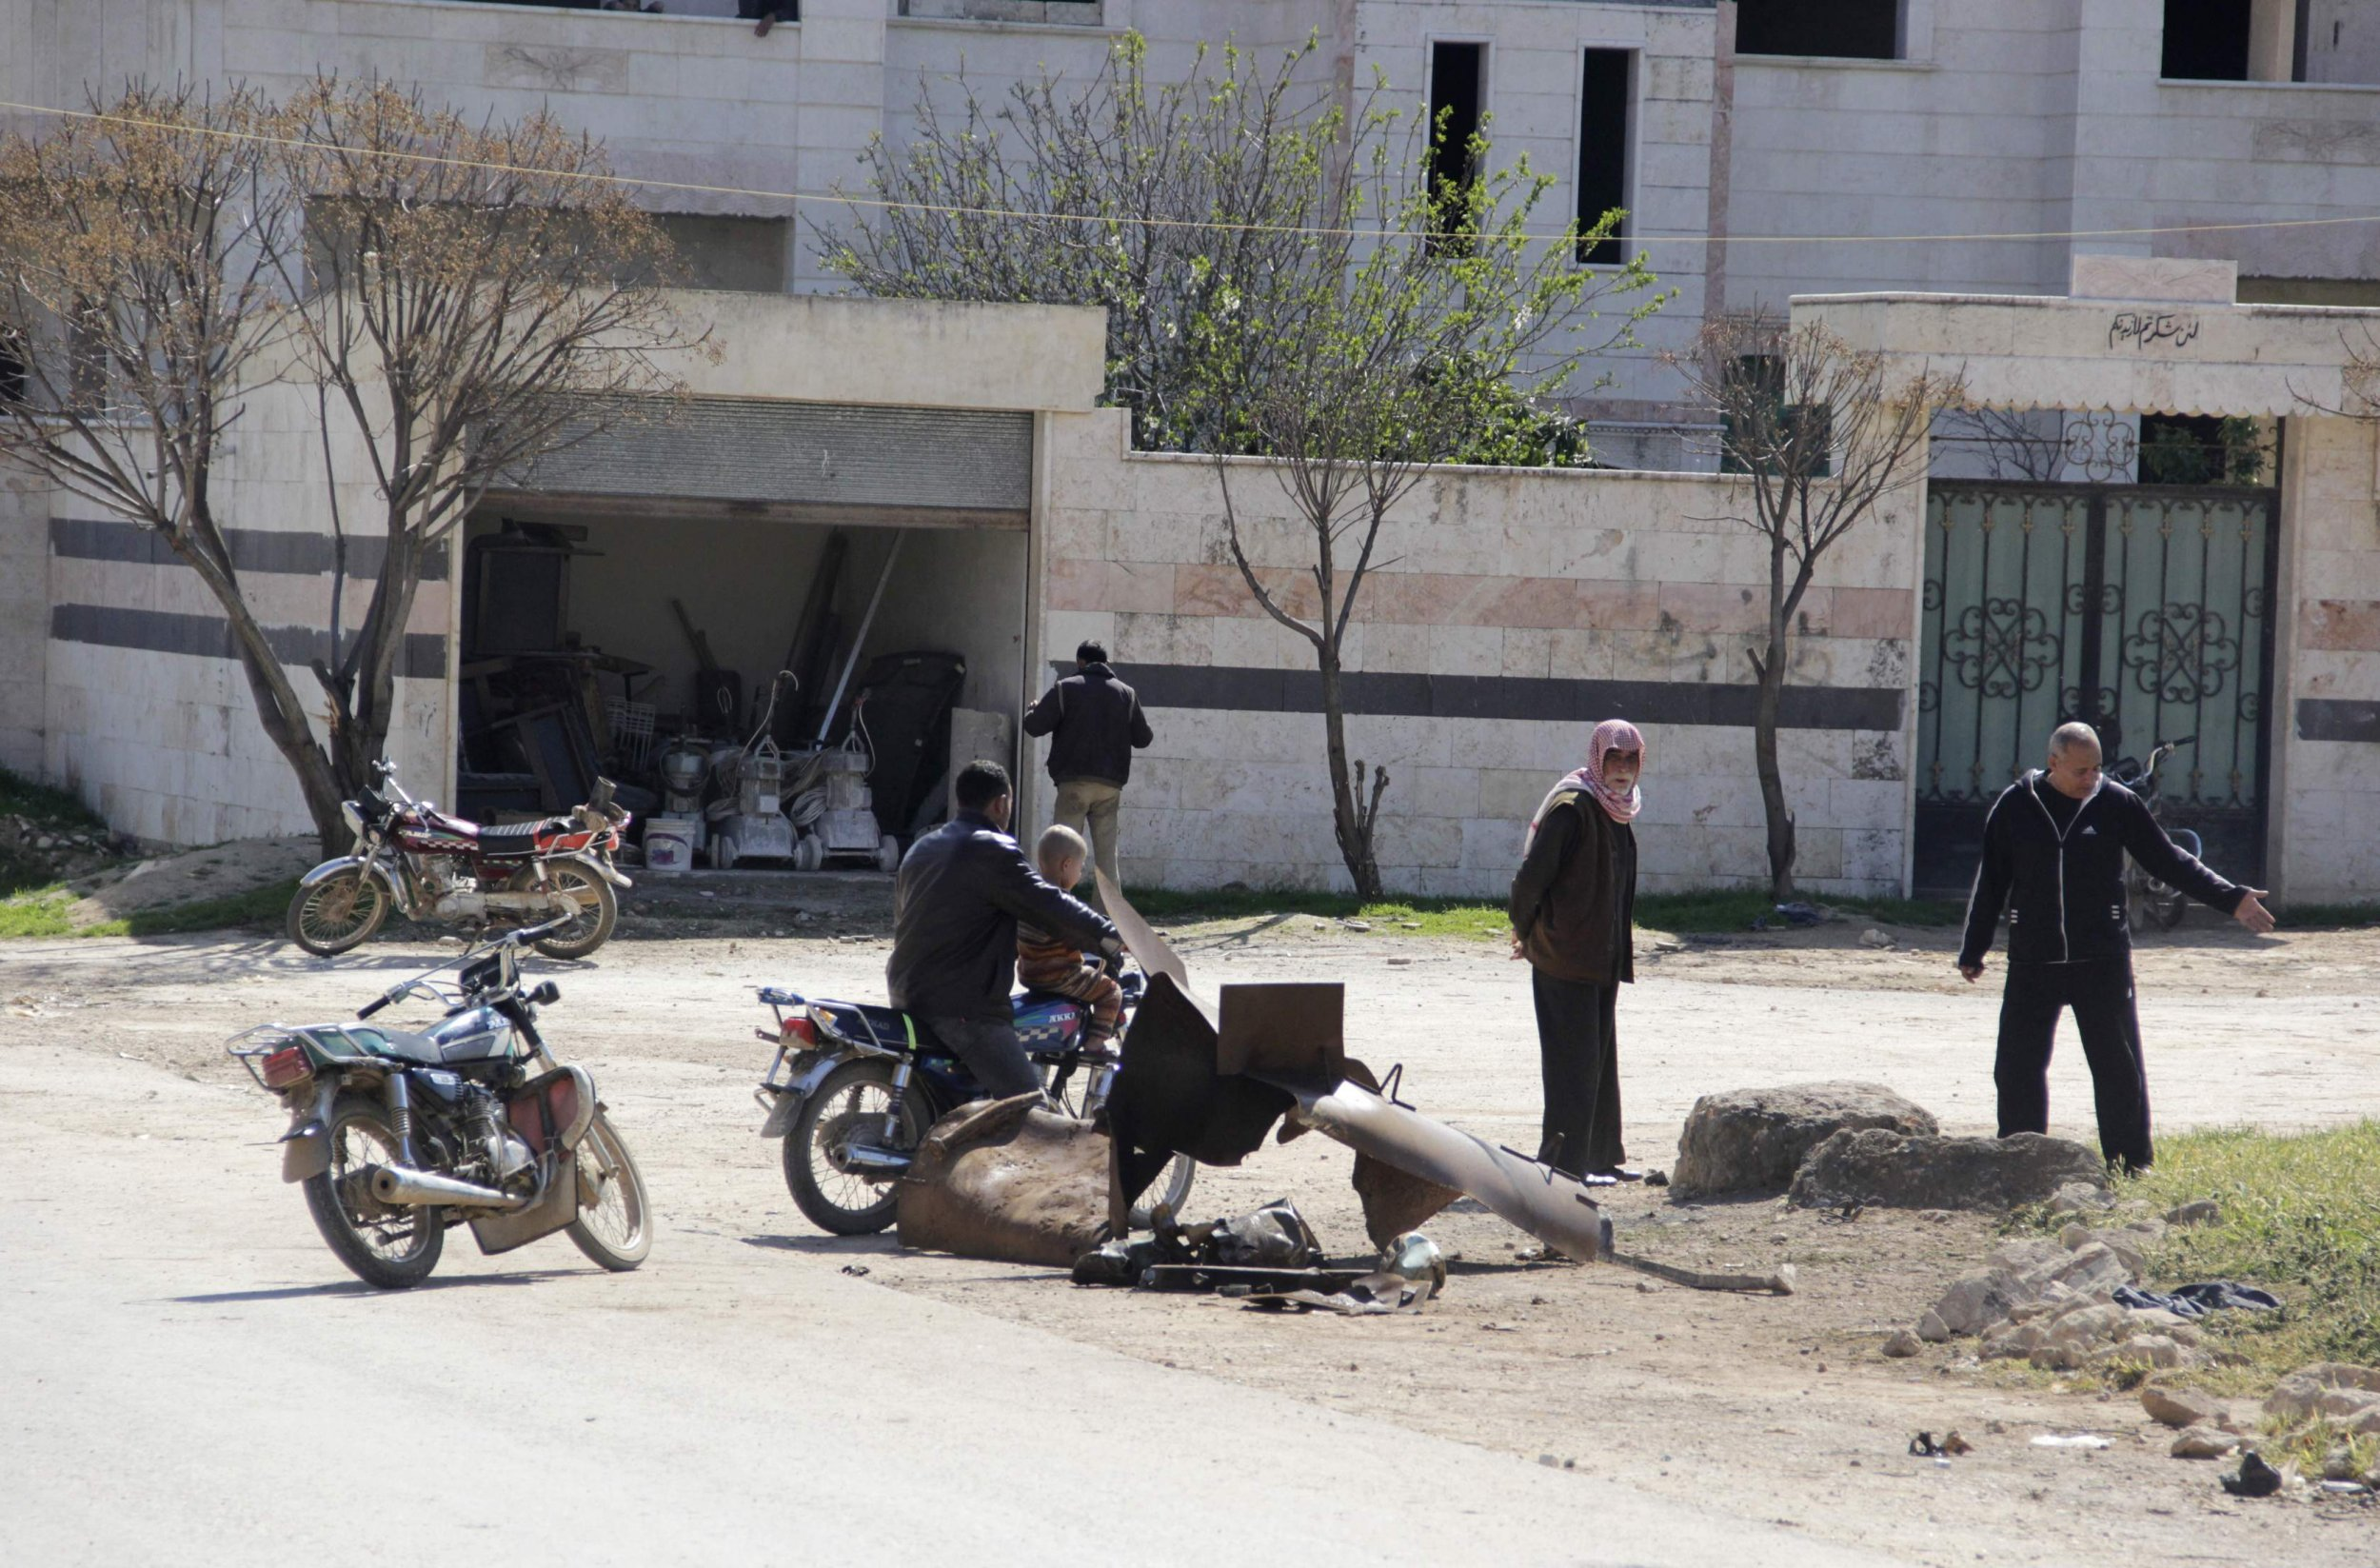 2015-03-17T120400Z_808251498_GM1EB3H1JK301_RTRMADP_3_MIDEAST-CRISIS-SYRIA-CHEMICALWEAPONS